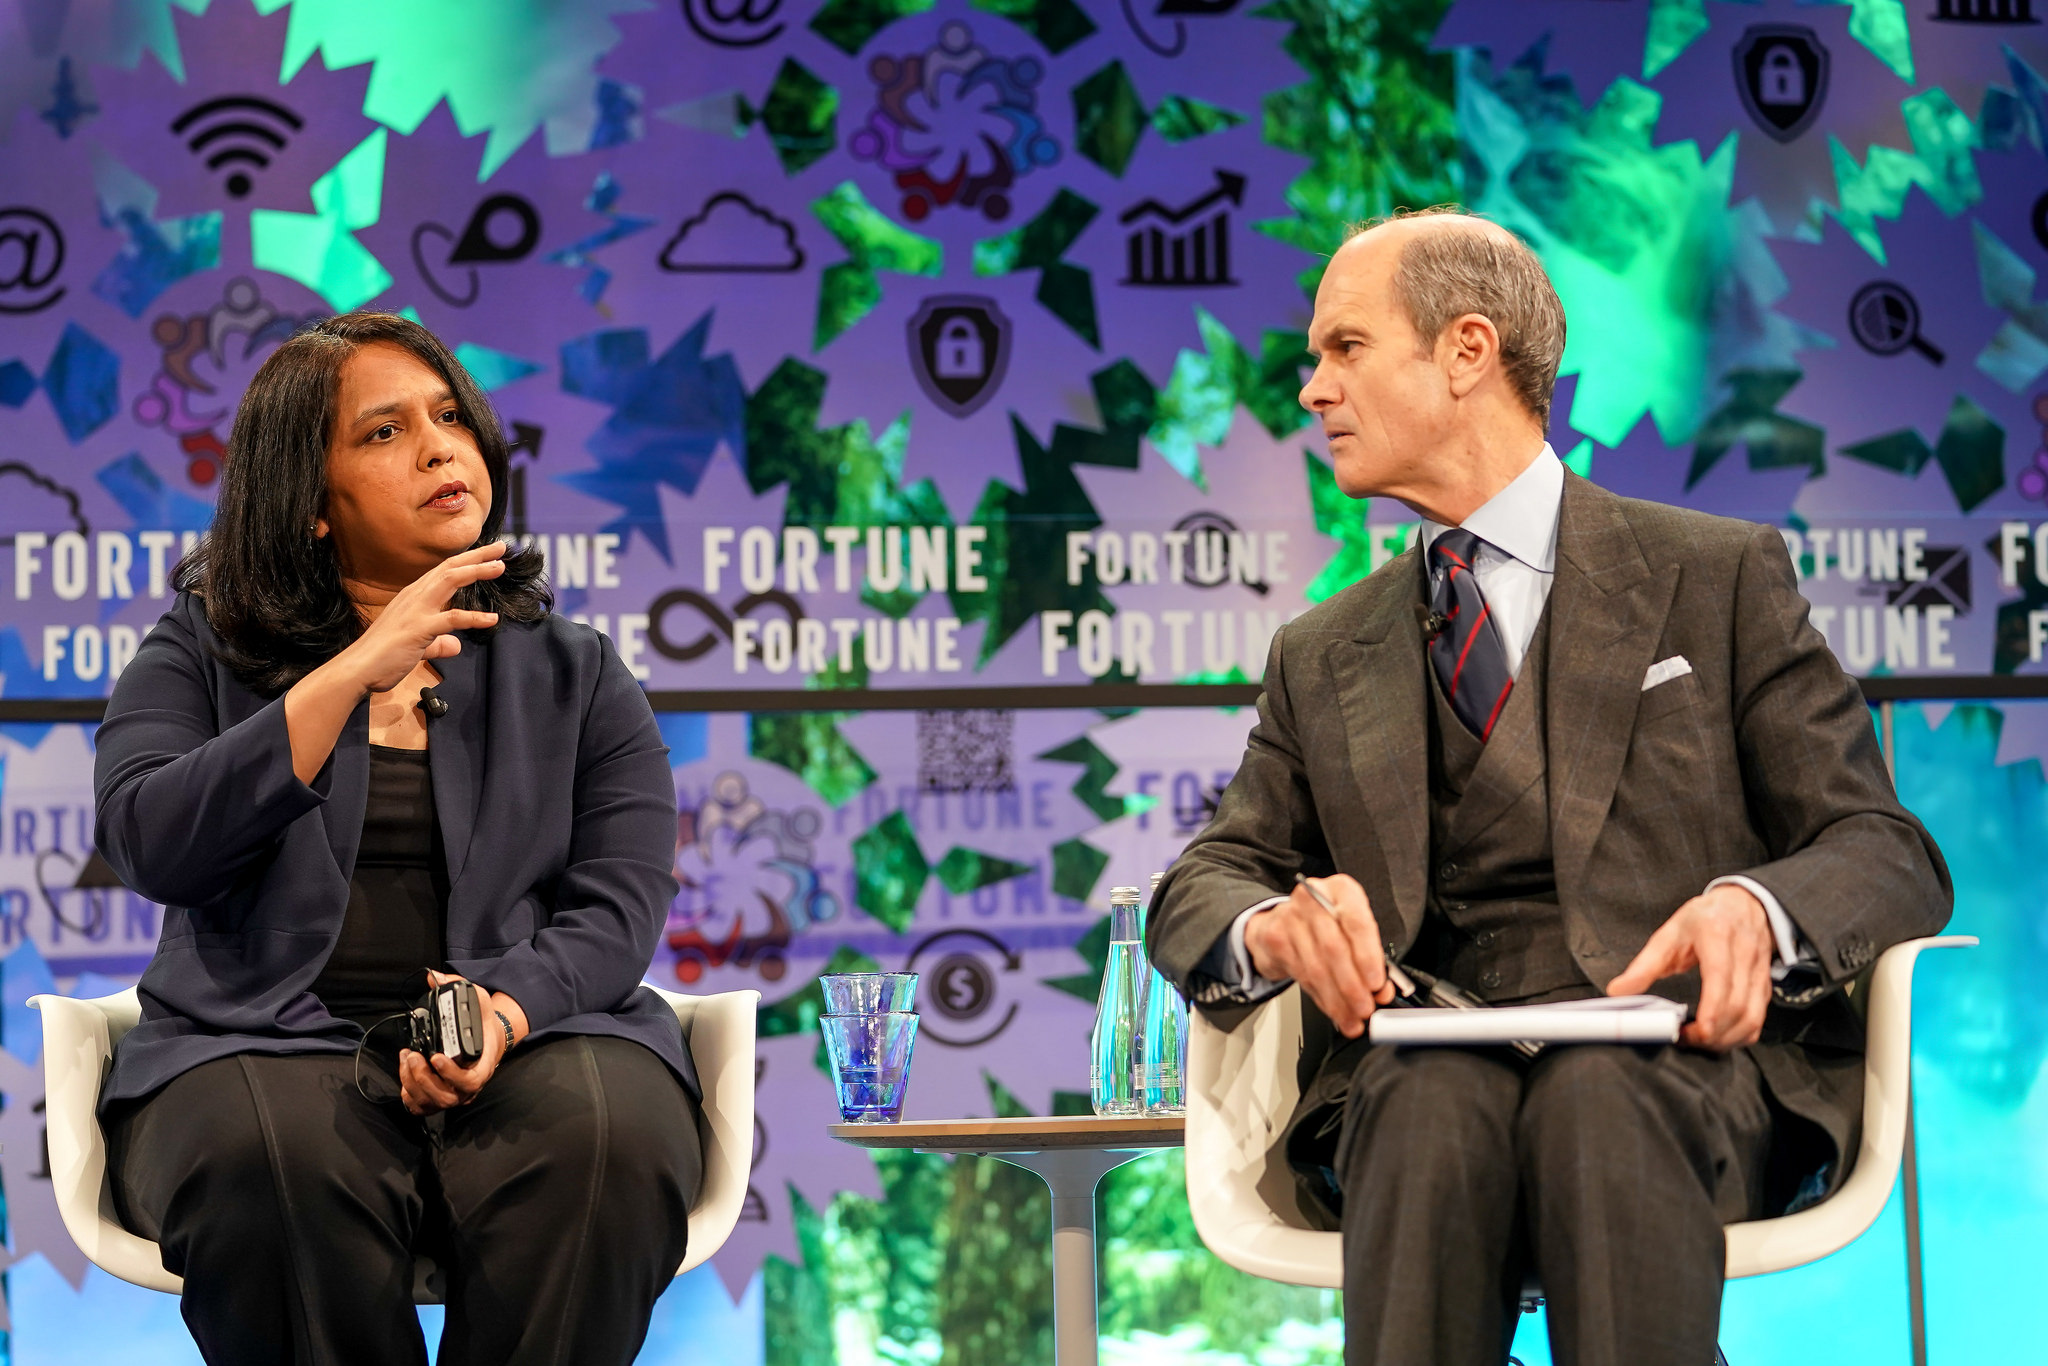 McKinsey's Anu Madgavkar (left) and Fortune's Geoff Calvin speak on stage at Fortune's Global Forum in Toronto.